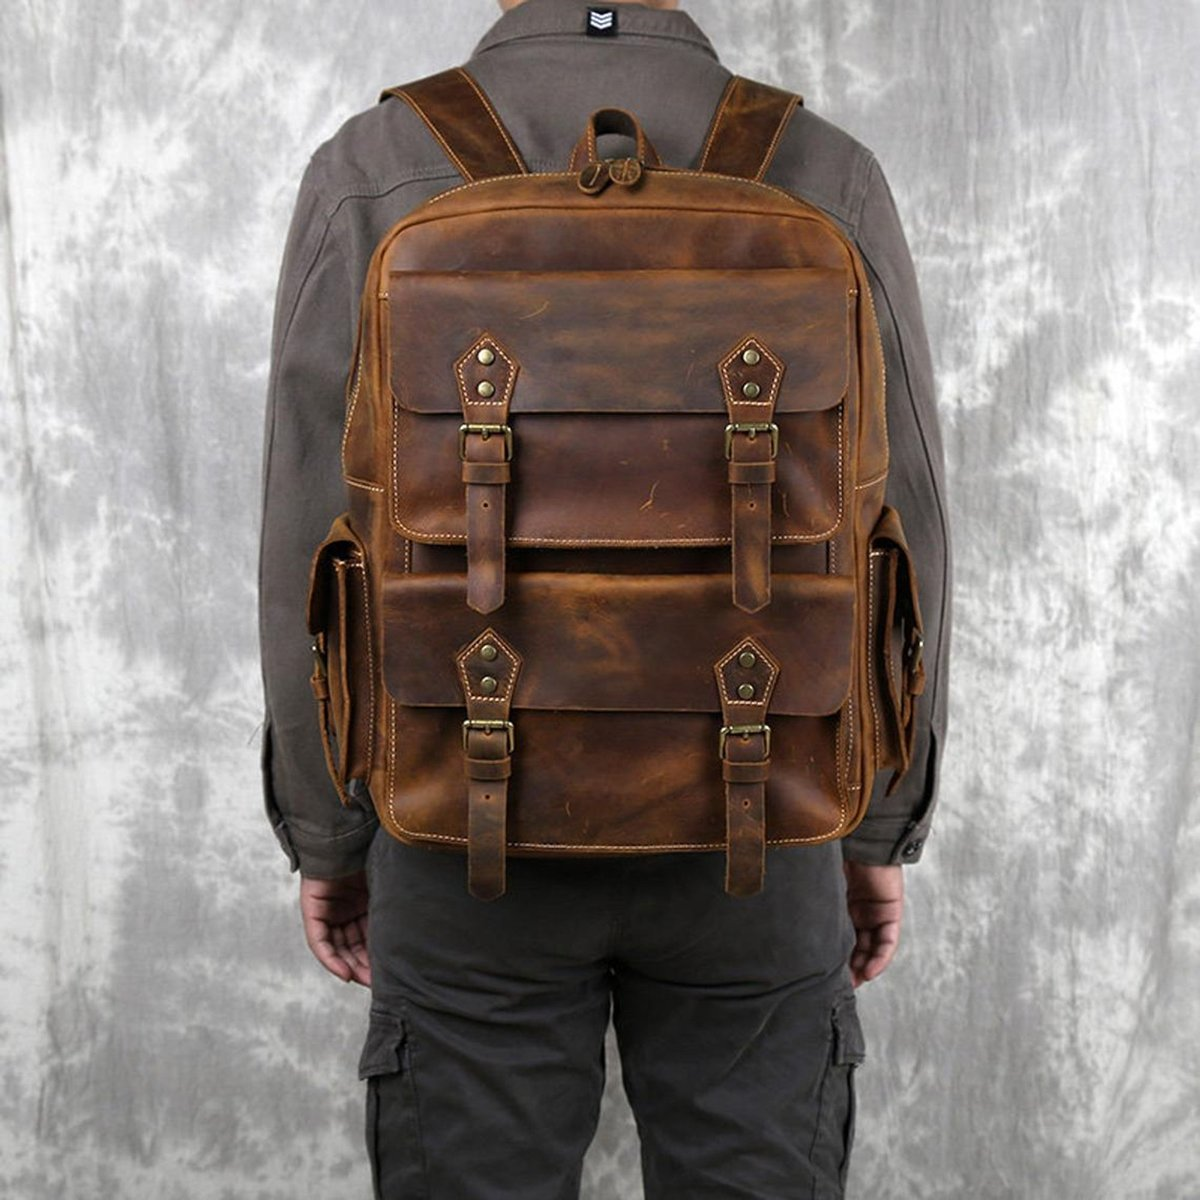 """Excited to share the latest addition to my #etsy shop: Personalized Leather Backpack For Men Leather Rucksack Travel Backpack 15"""" Laptop Backpack Gift for Him Leather Anniversary Gift  #brown #graduation #thanksgiving #bohohippie #leatherlaptopba"""